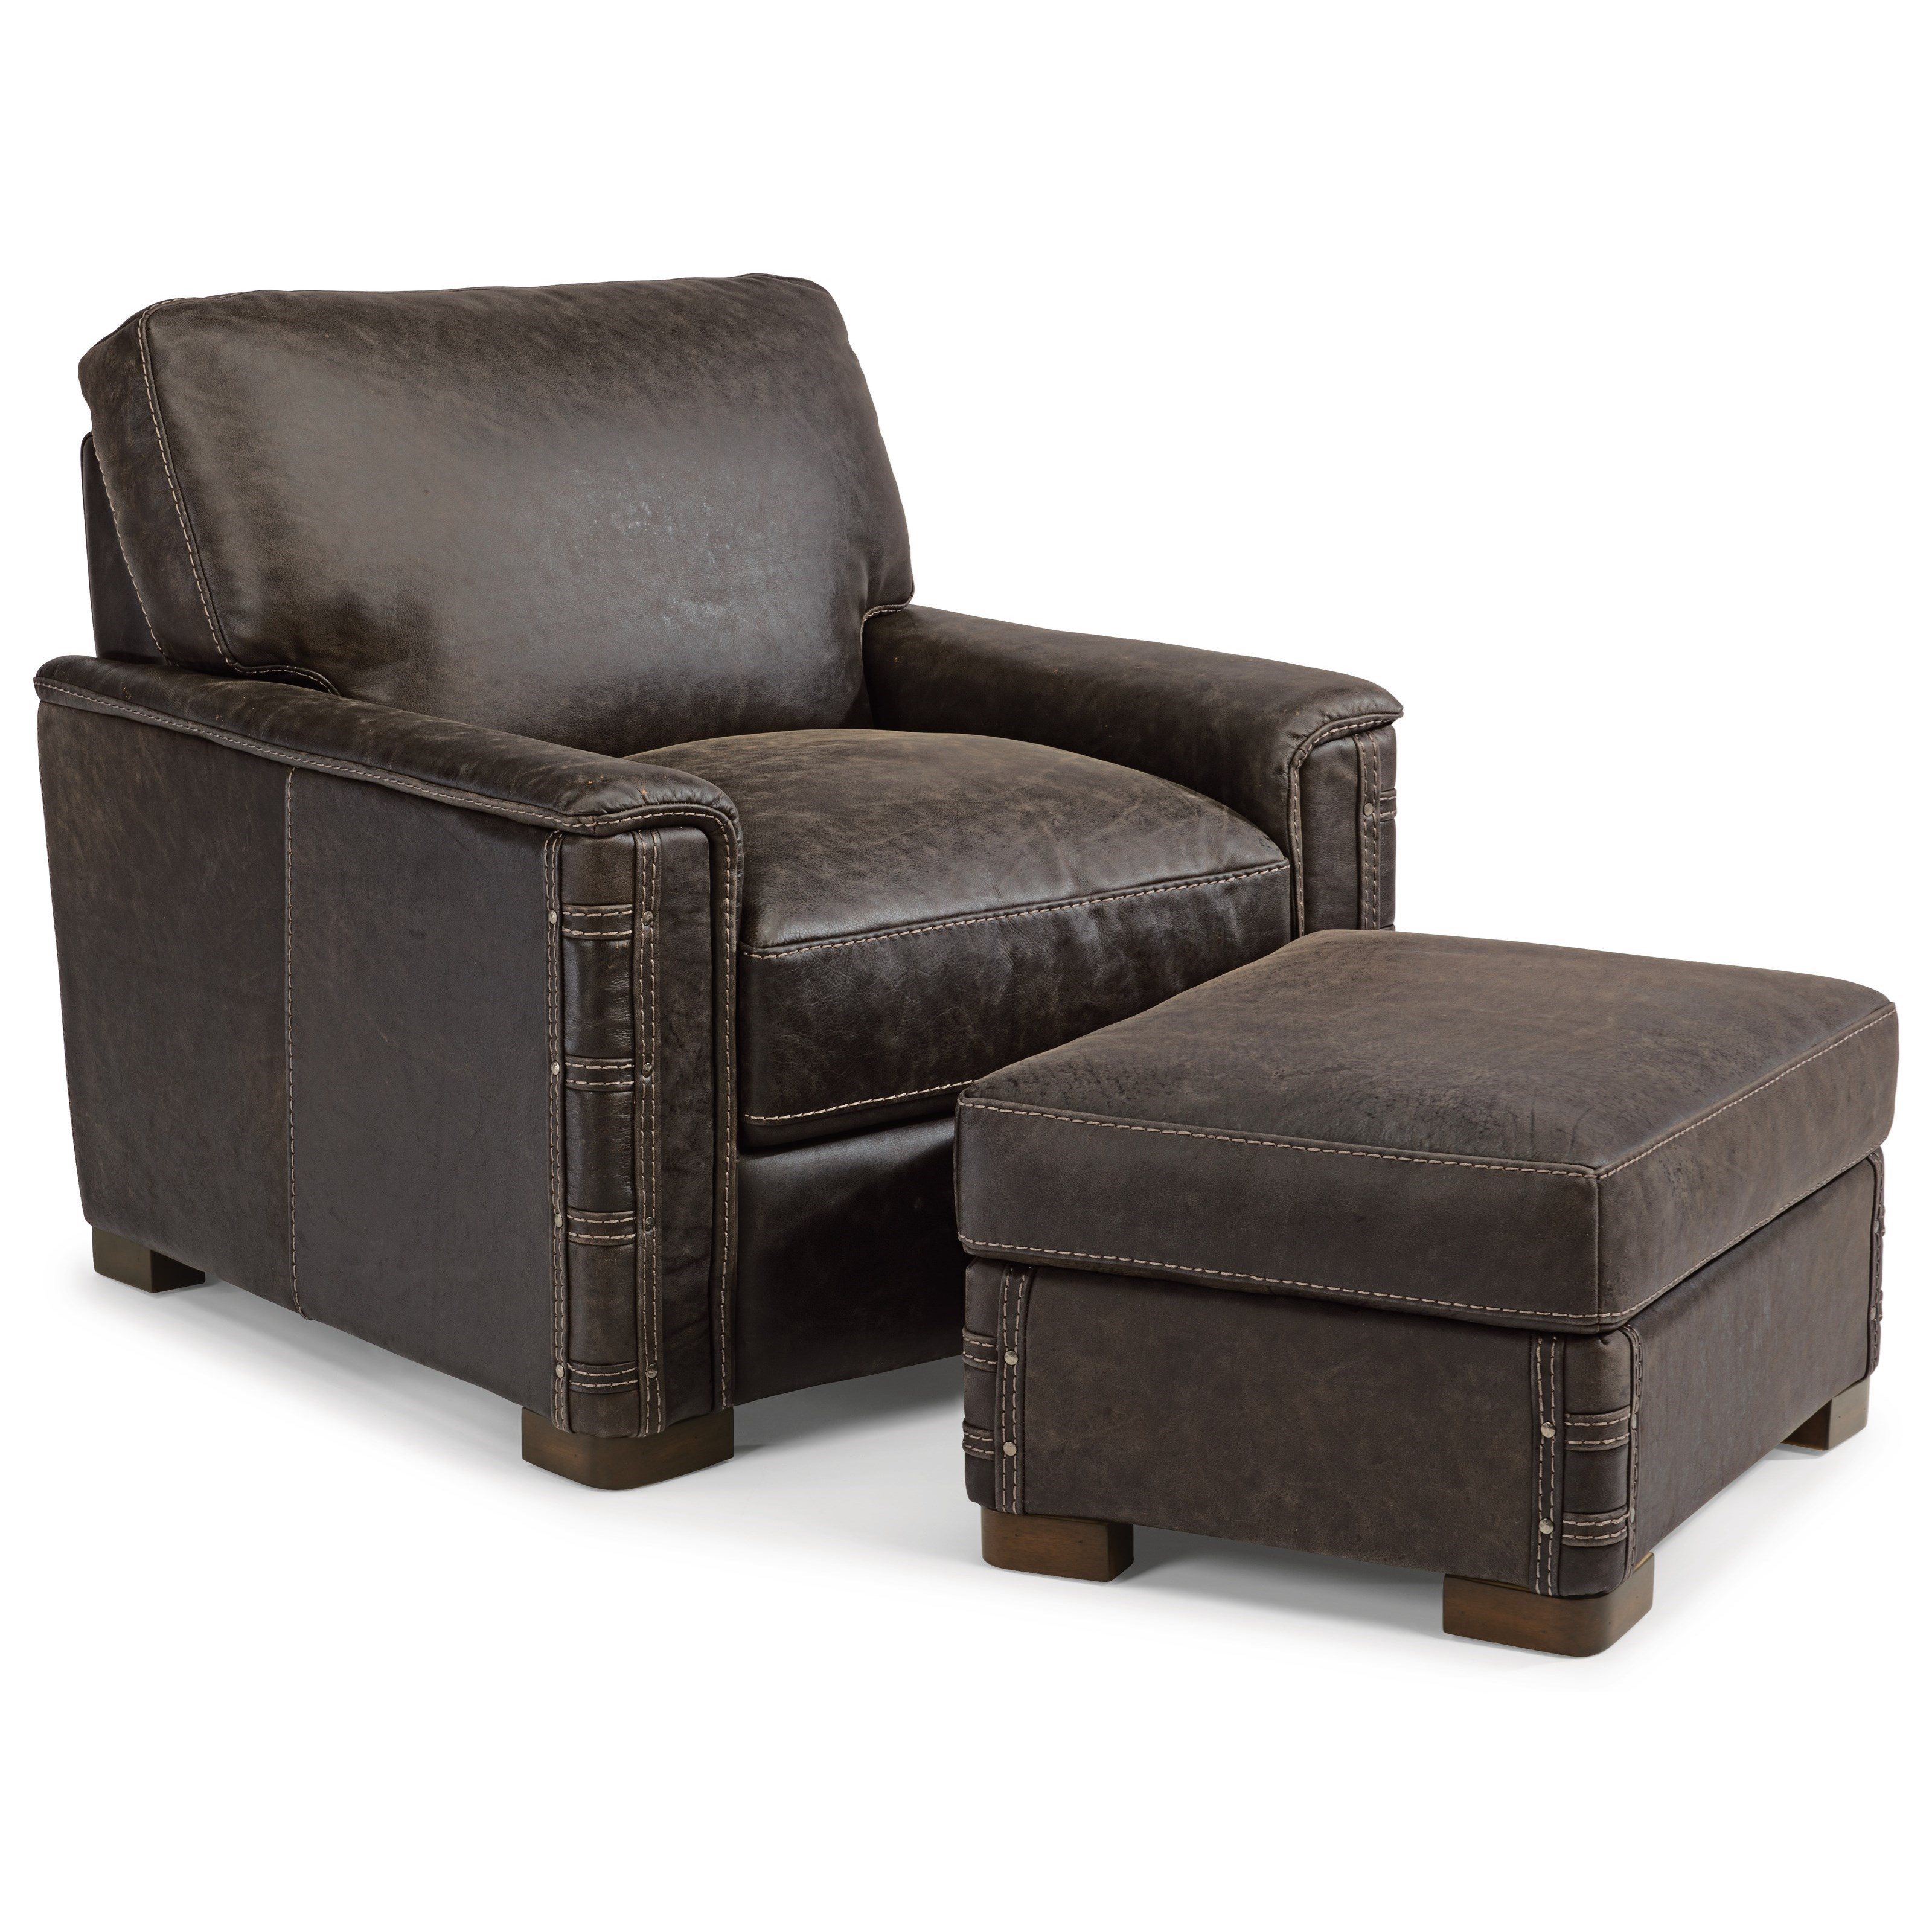 Chair And Ottoman Set Latitudes Lomax Rustic Leather Chair And Ottoman Set By Flexsteel At Turk Furniture